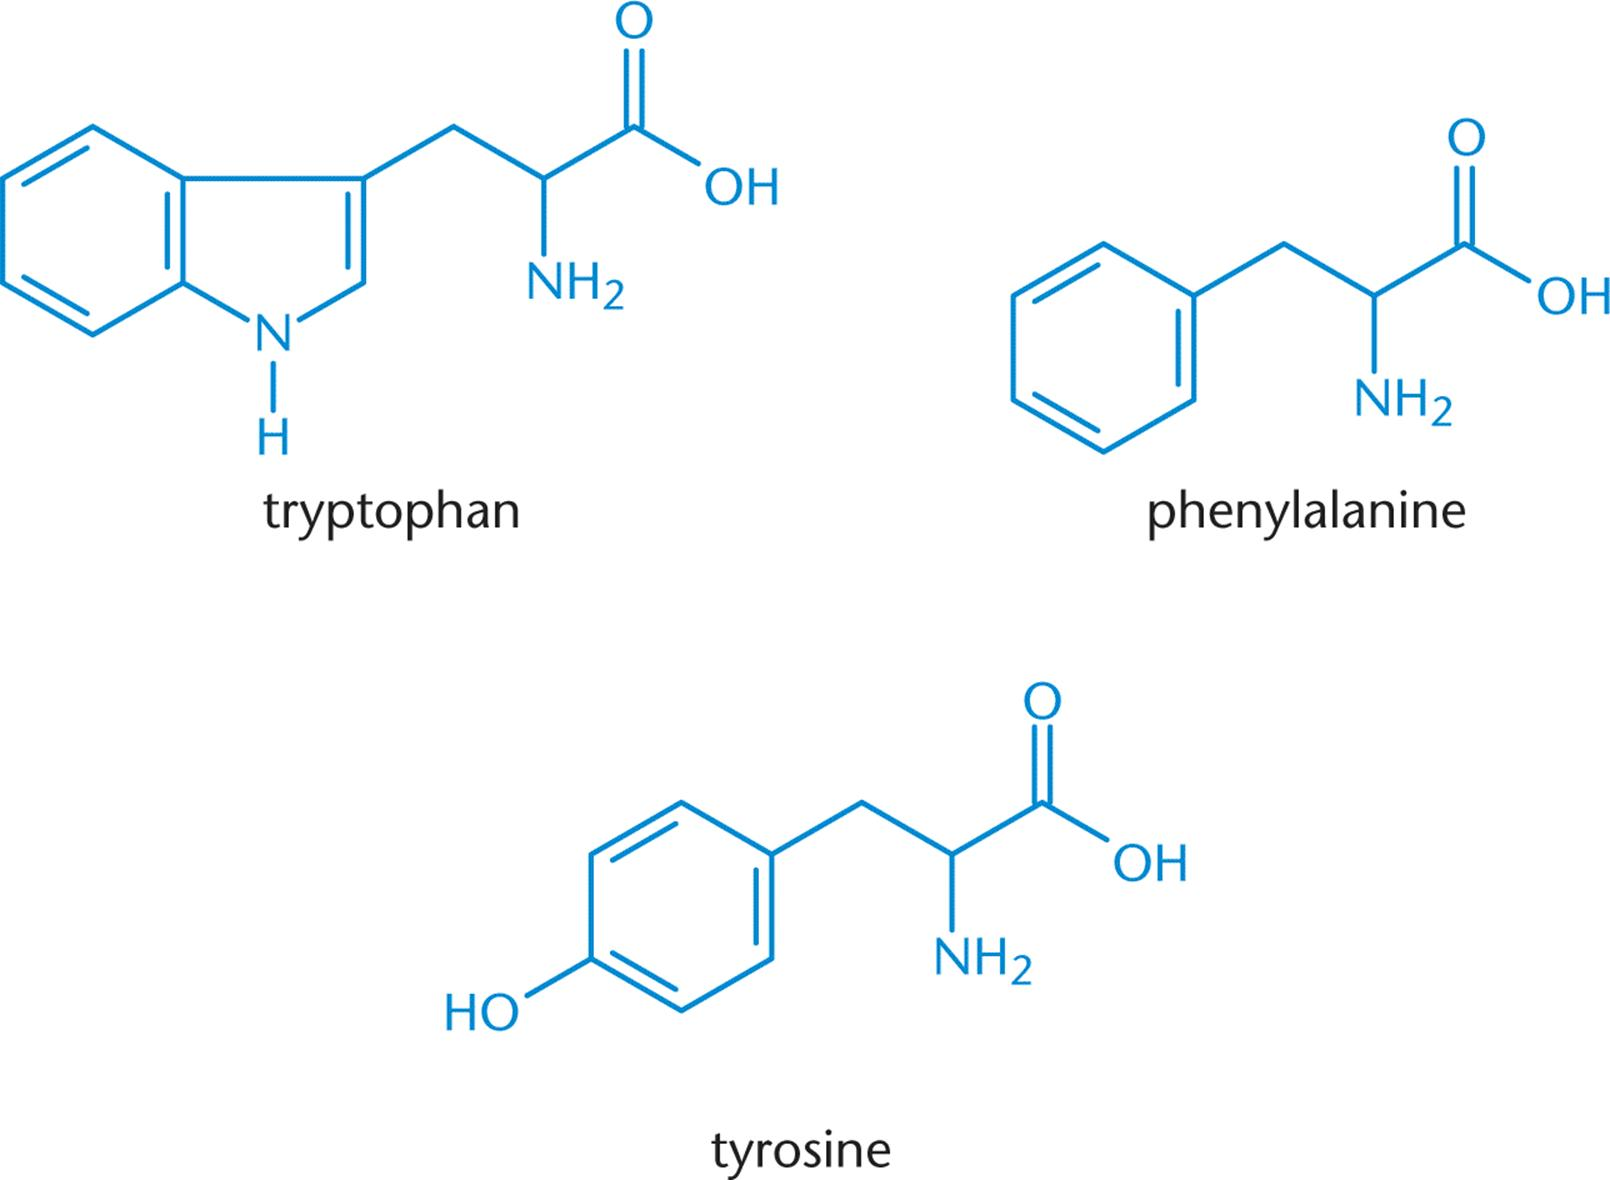 Amino Acids Found in Proteins - Amino Acids, Peptides, and ...